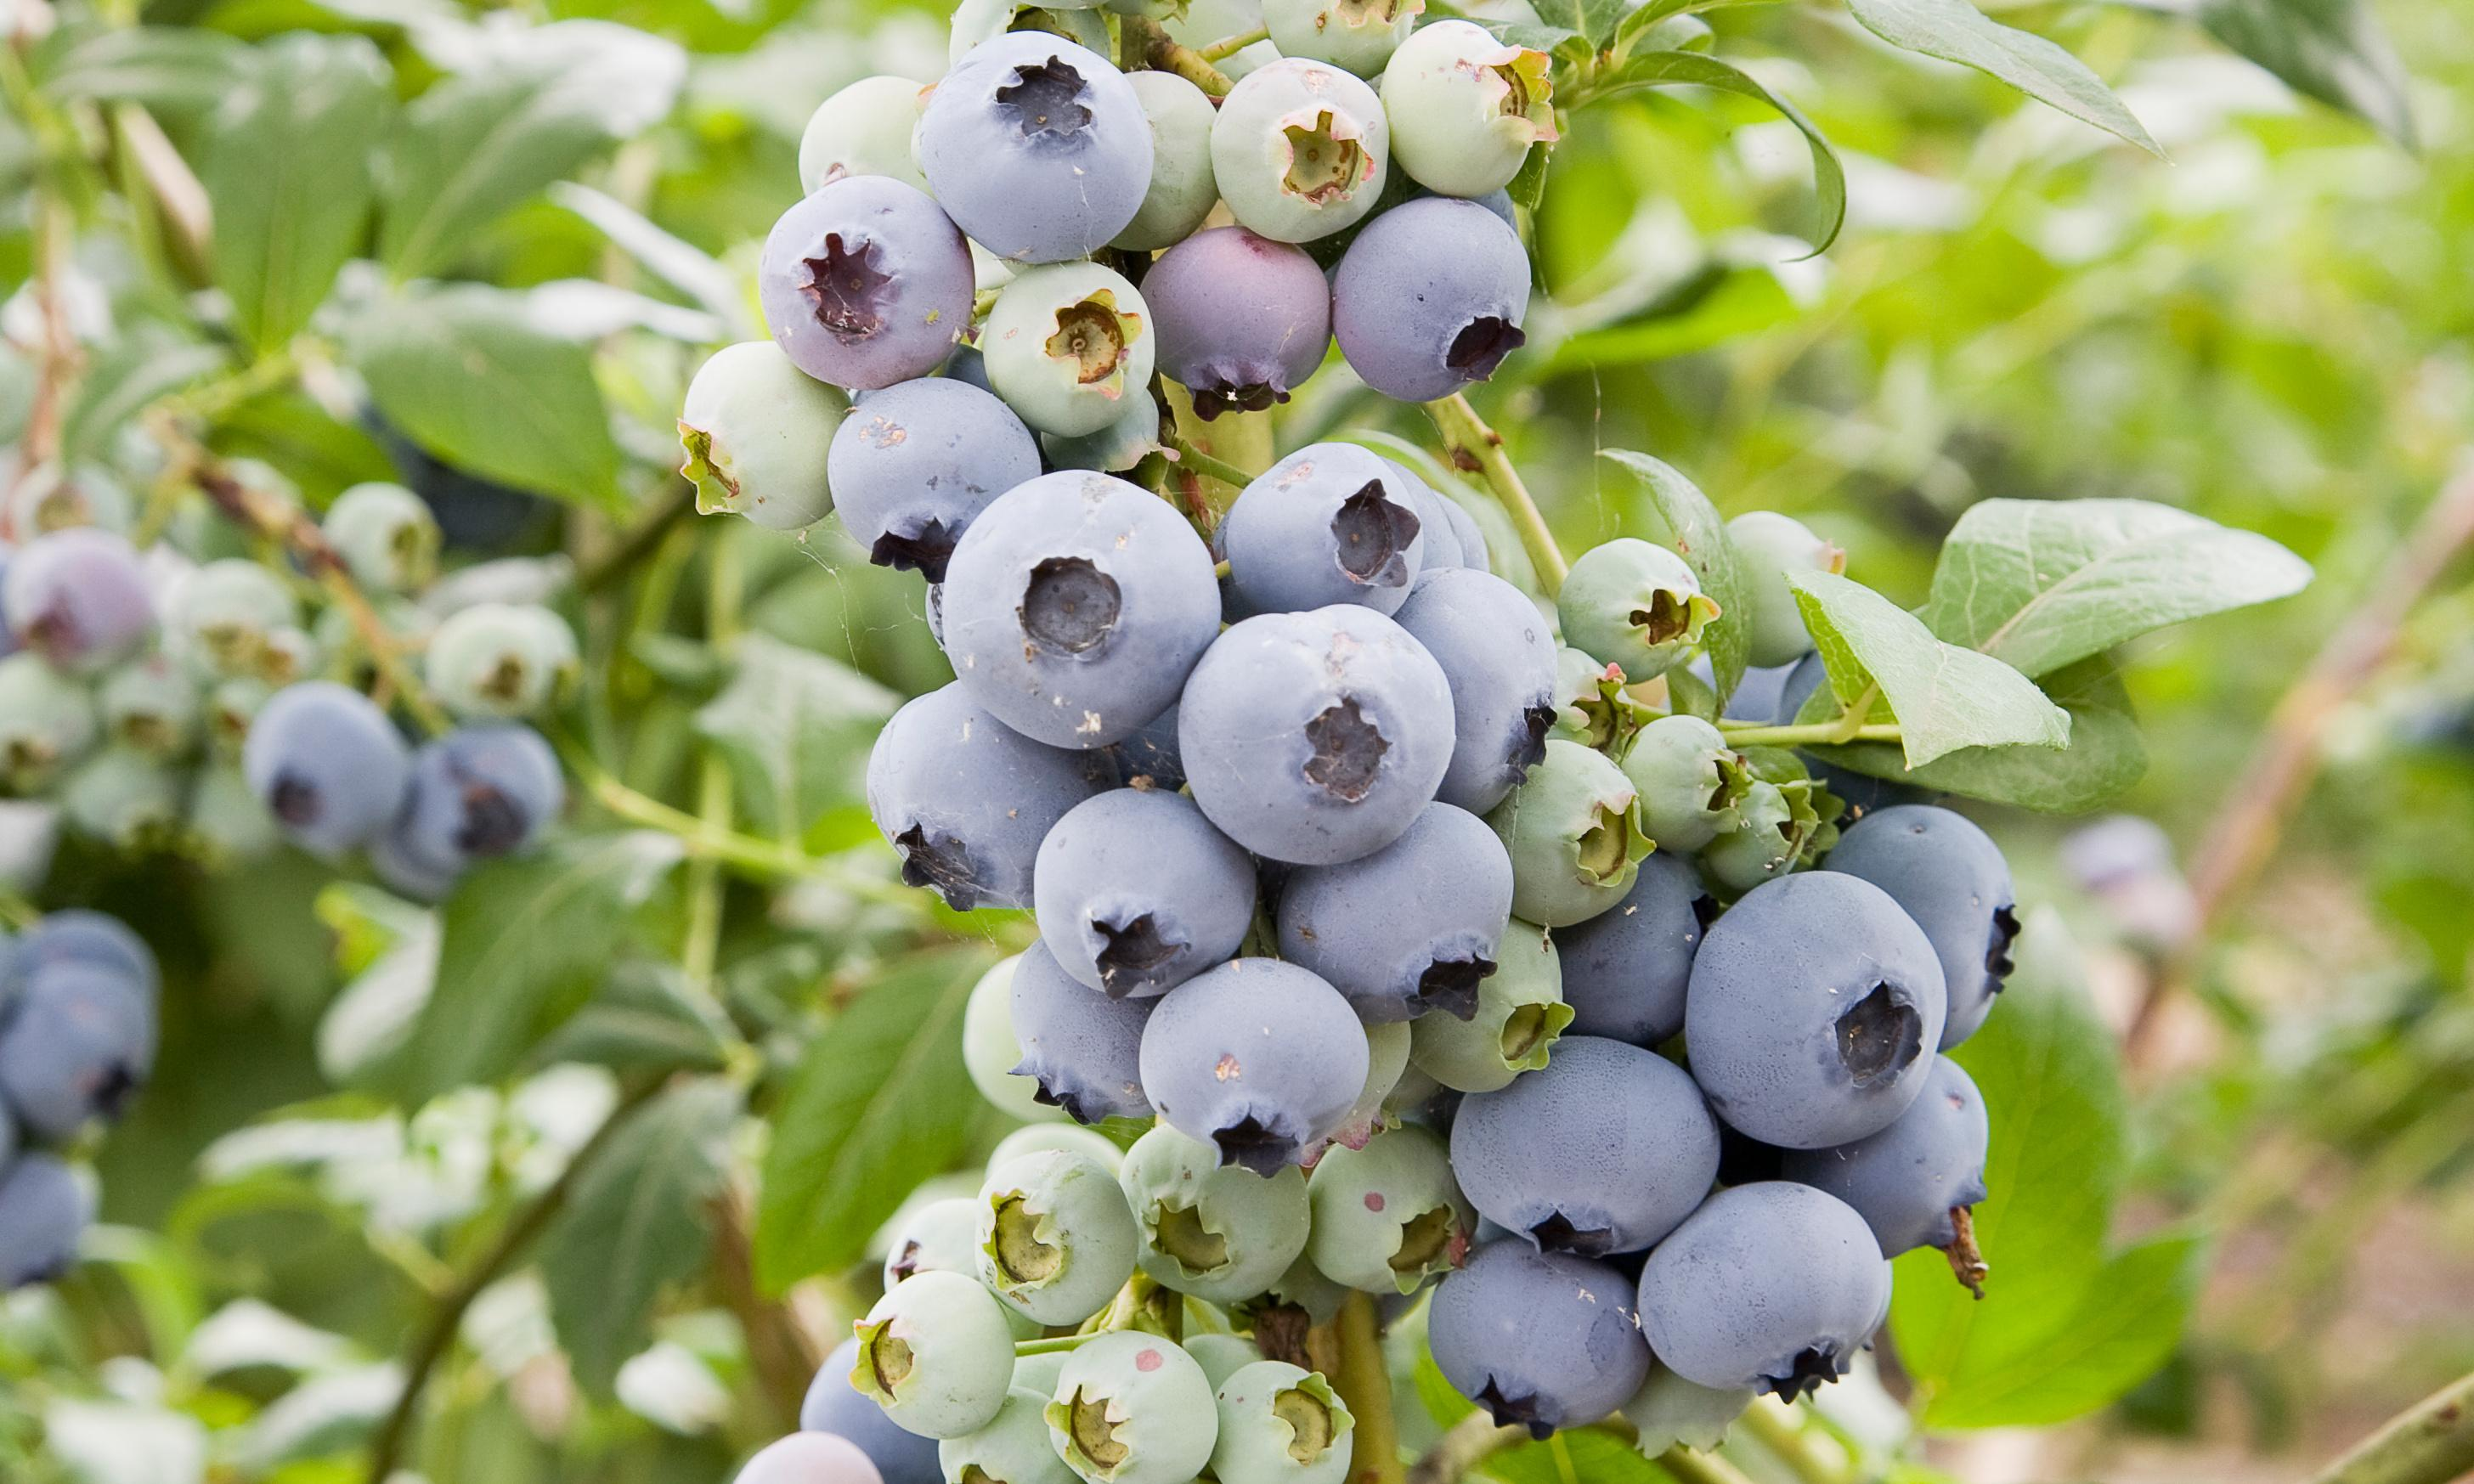 Plant blueberries in December, reap the rewards next year